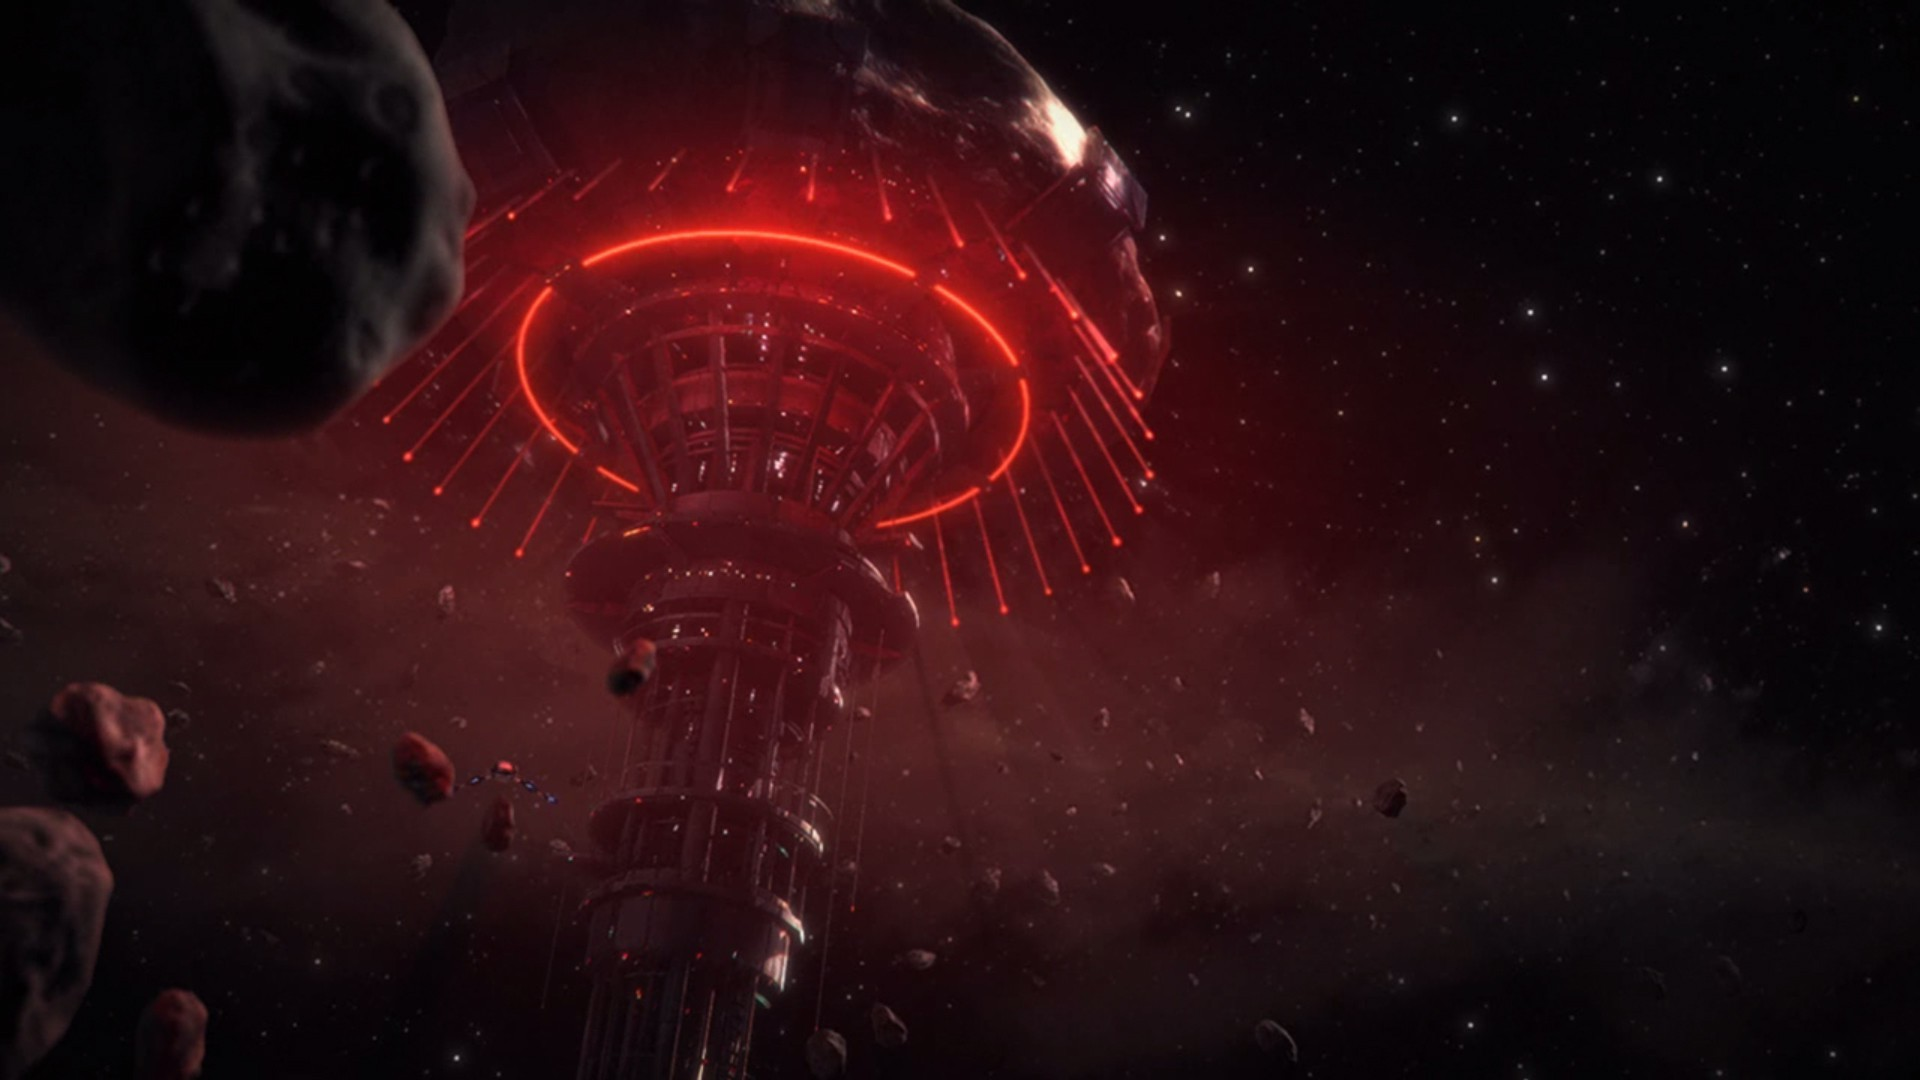 3d Asteroid Wallpaper Science Fiction Omega Mass Effect Wallpapers Hd